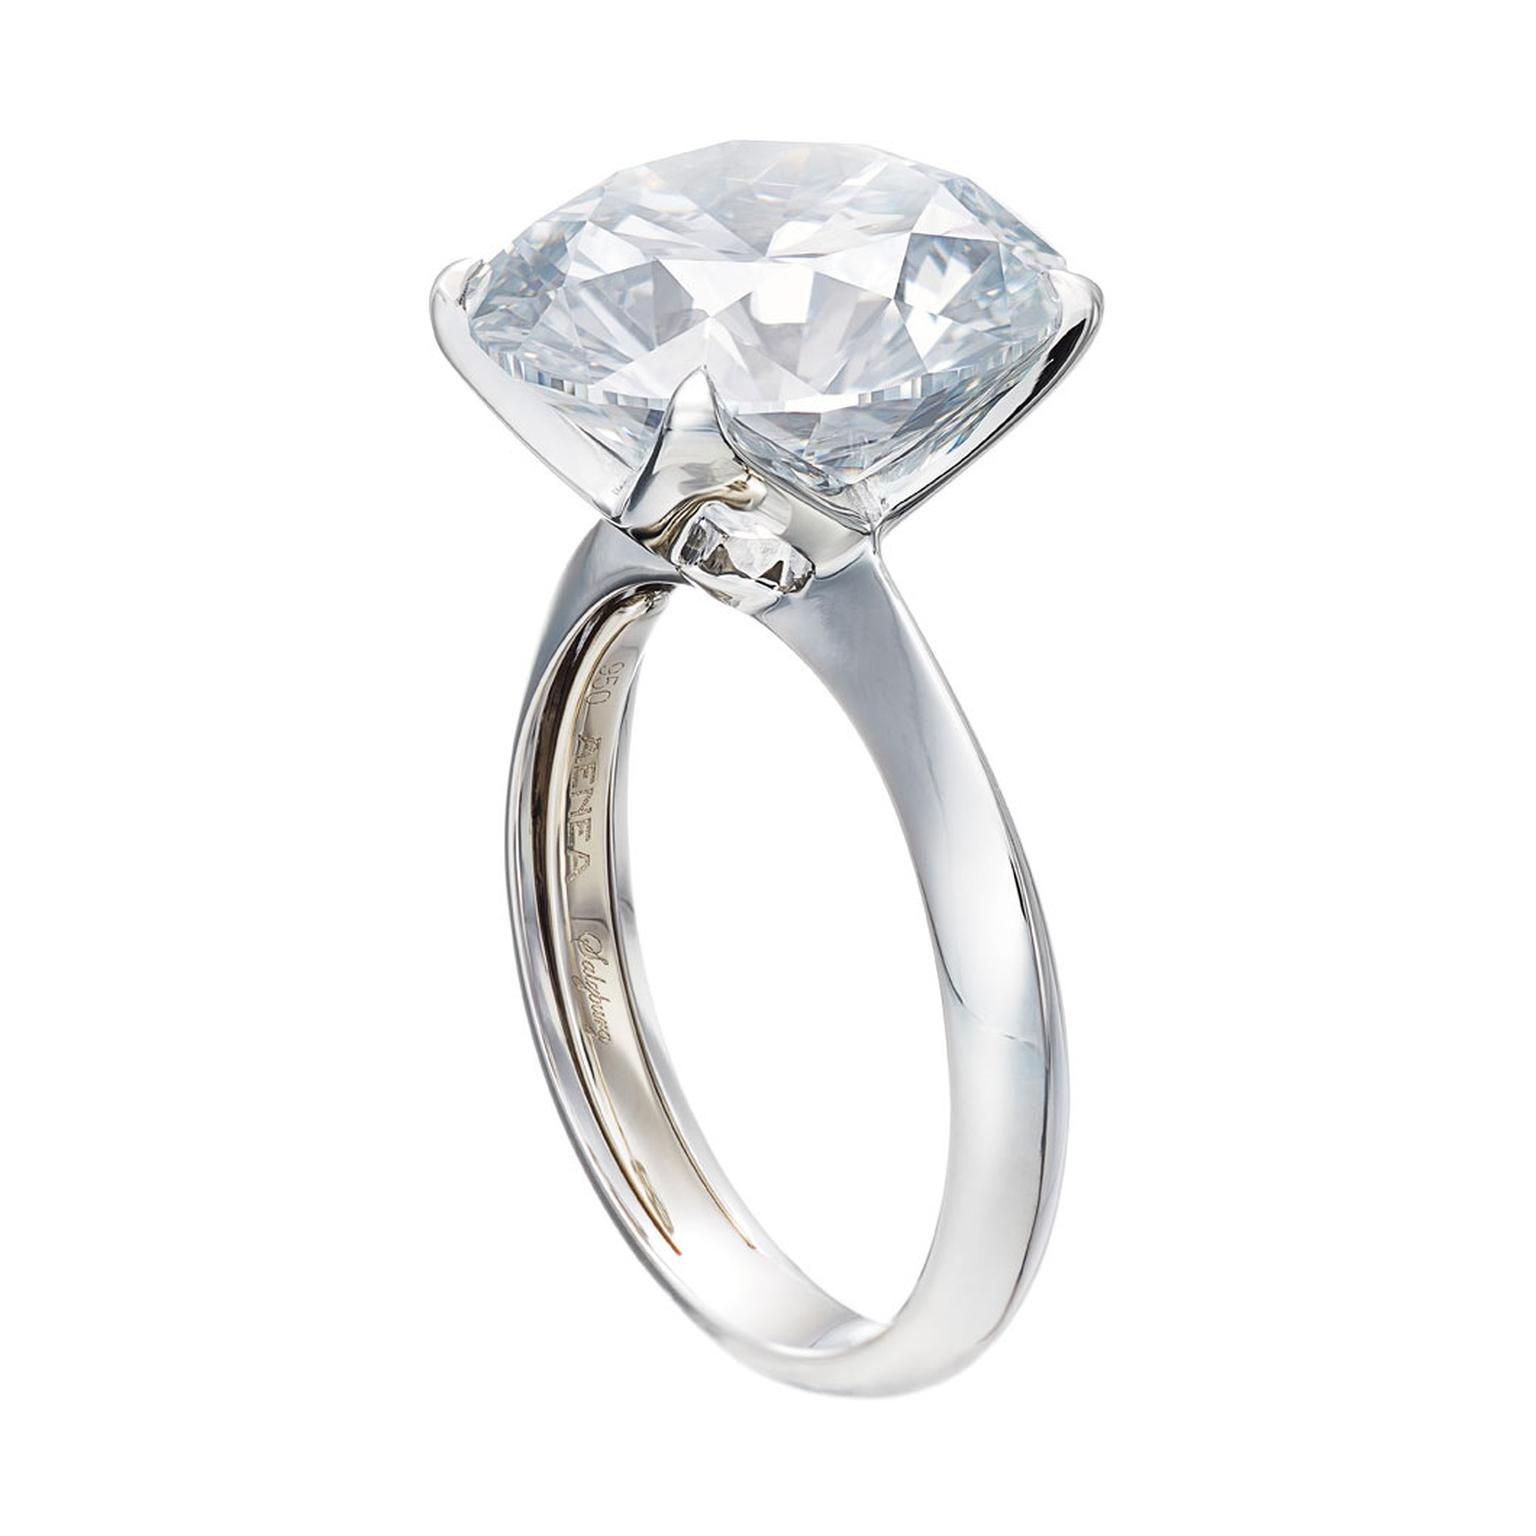 AAENEA-diamond-engagement-ring